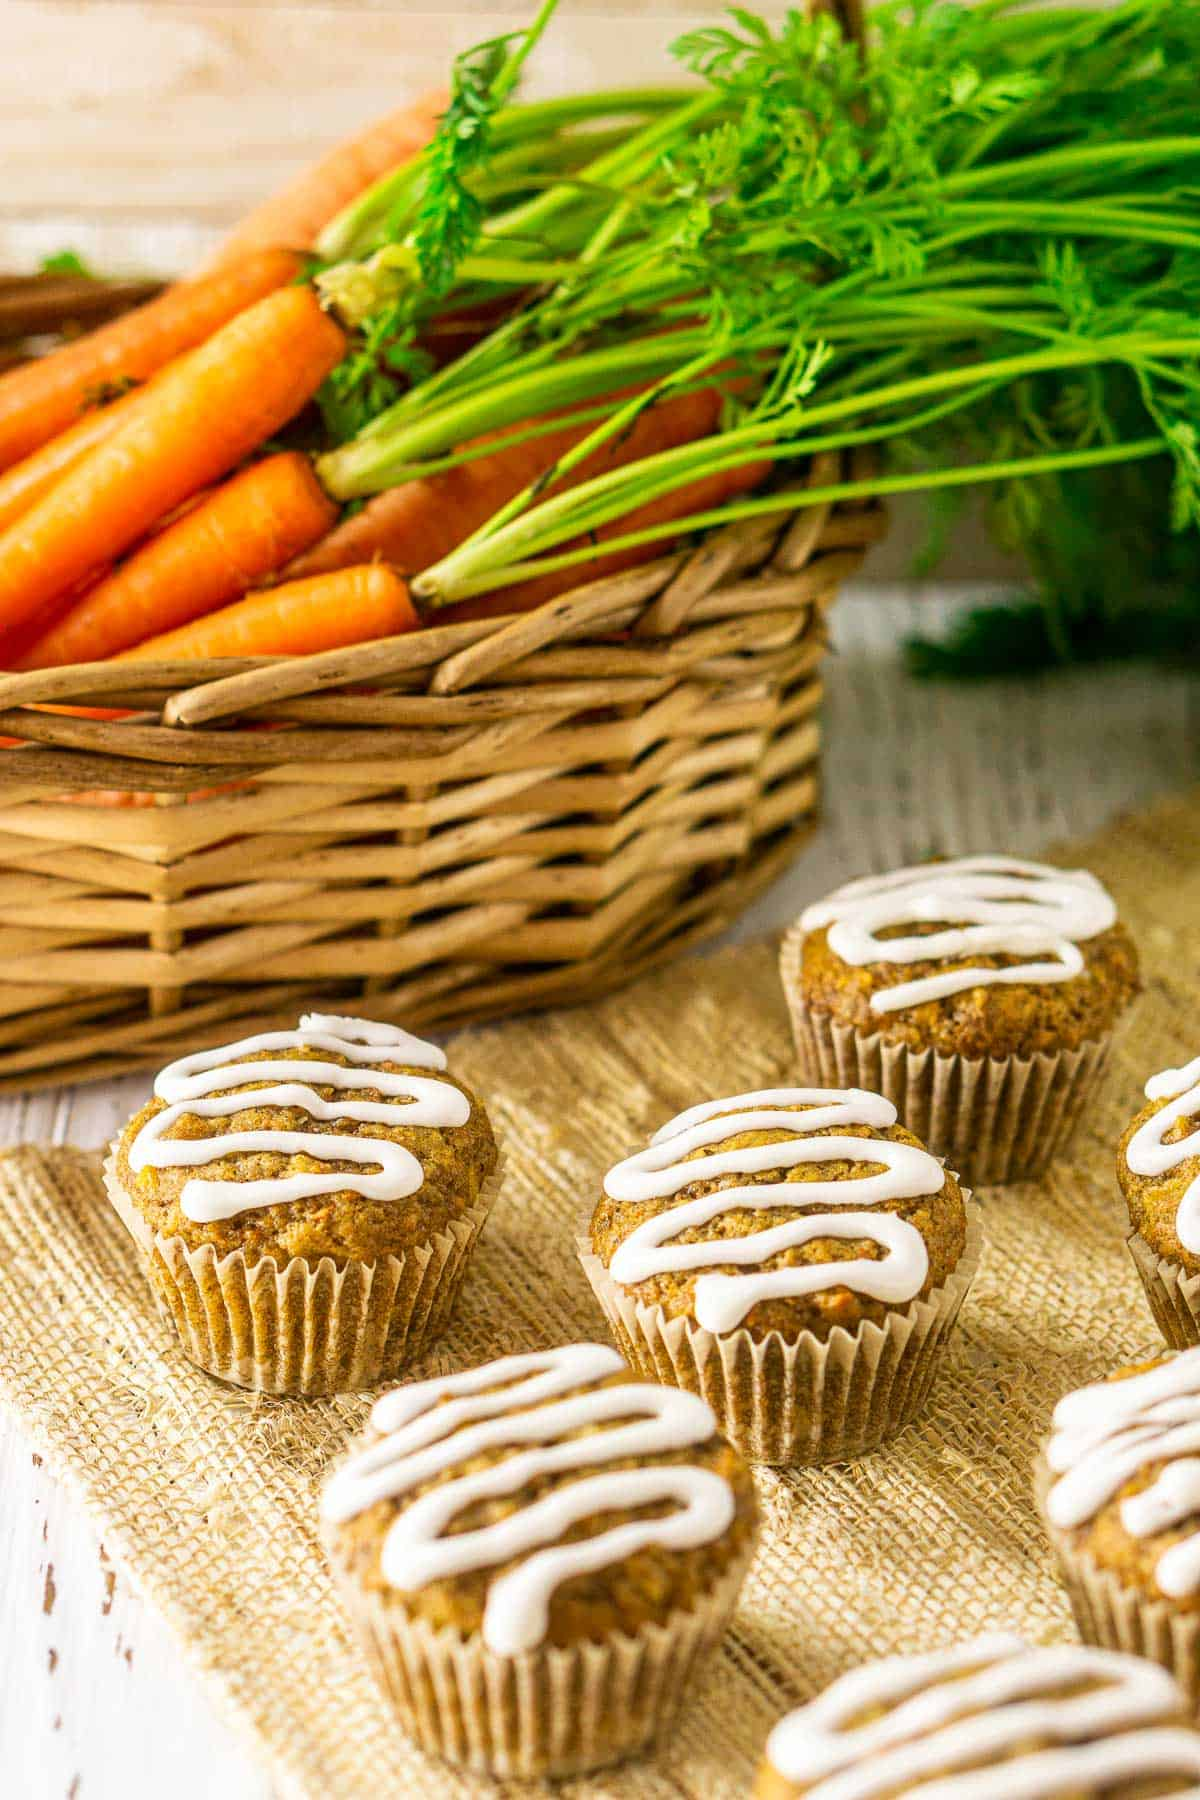 The carrot cake muffins in front of a basket with fresh carrots in it.